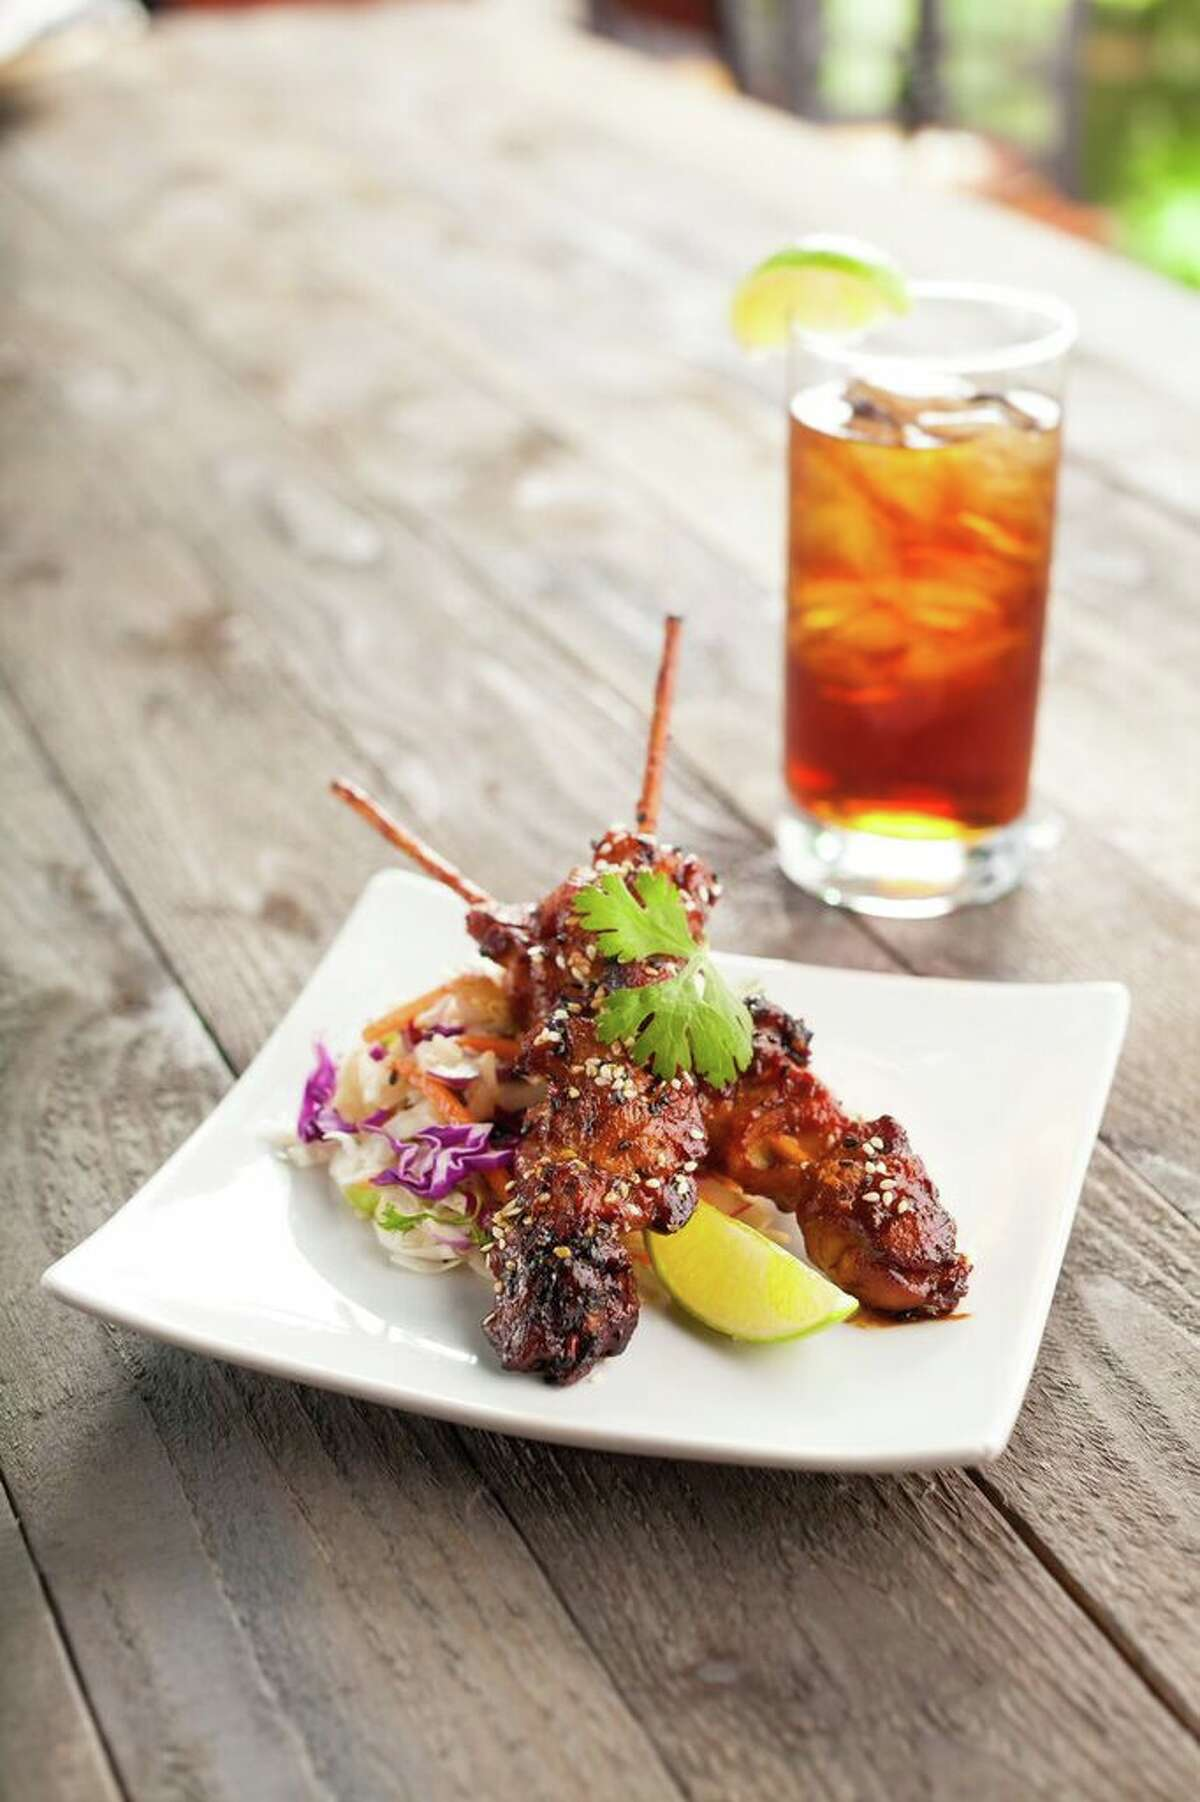 Mama Fu's Asian House opened it second Houston location on Dec. 7 at 12341 FM 1960 Rd W. Shown: Chicken satay.